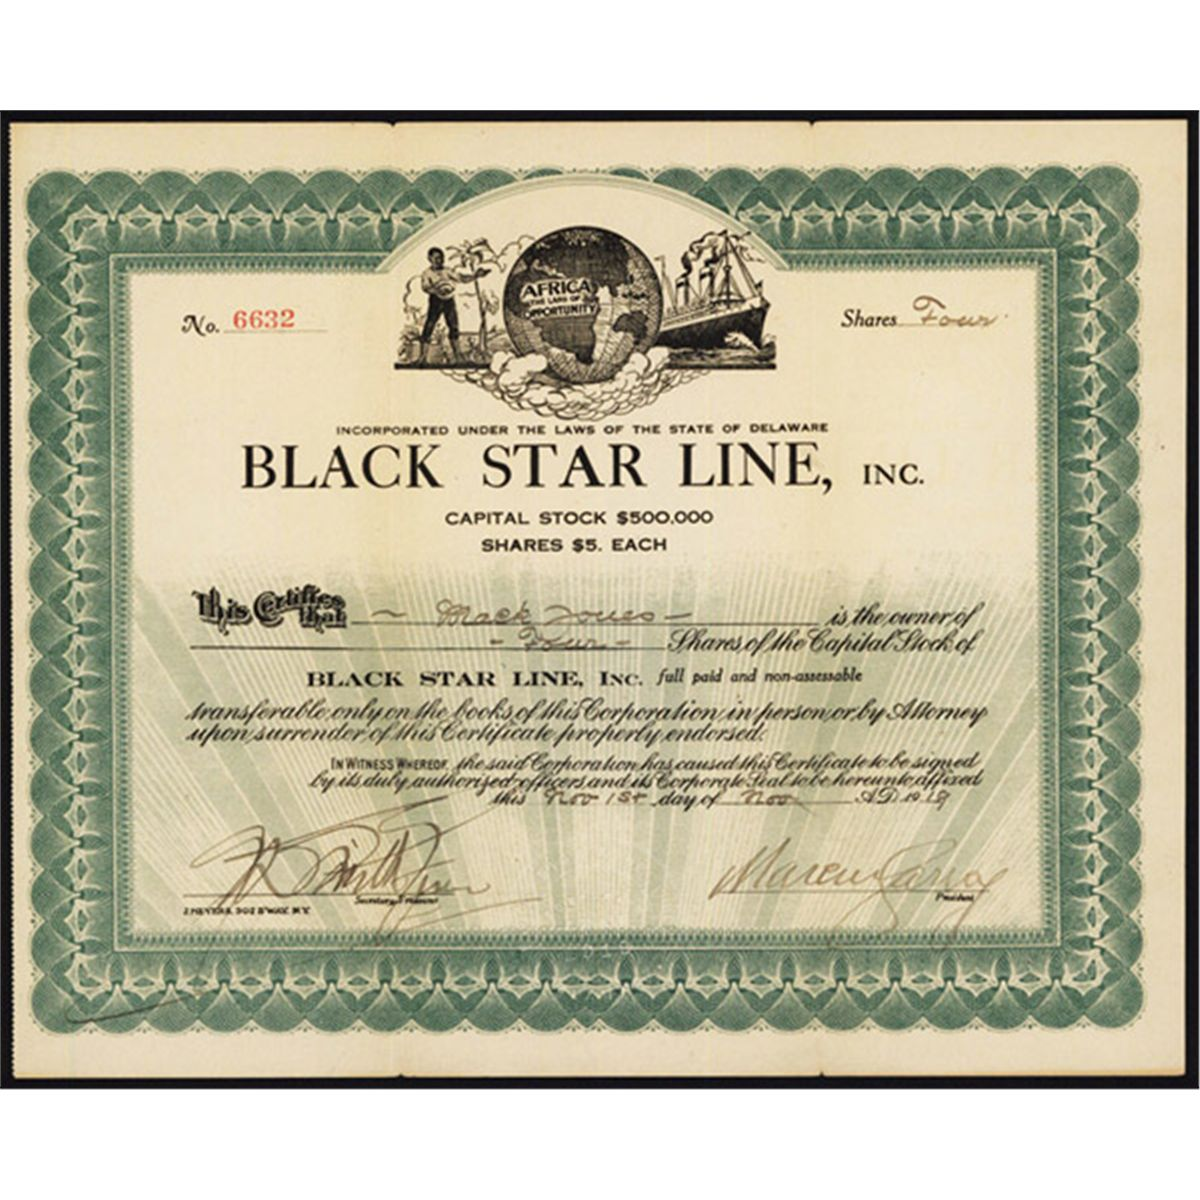 The Black Star Line was incorporated 96 years ago today